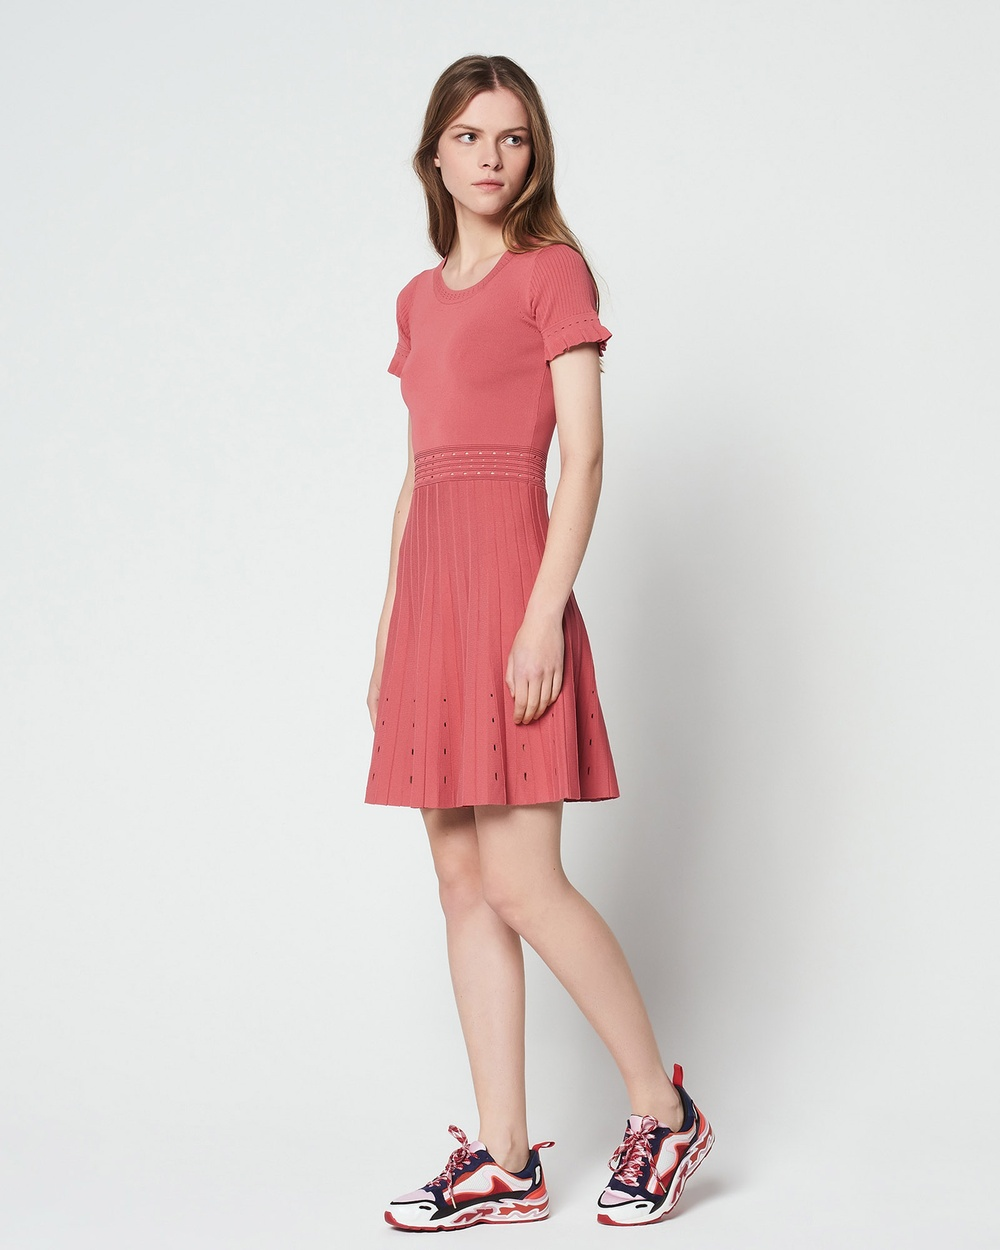 Sandro Etor Dress Dresses Raspberry Etor Dress